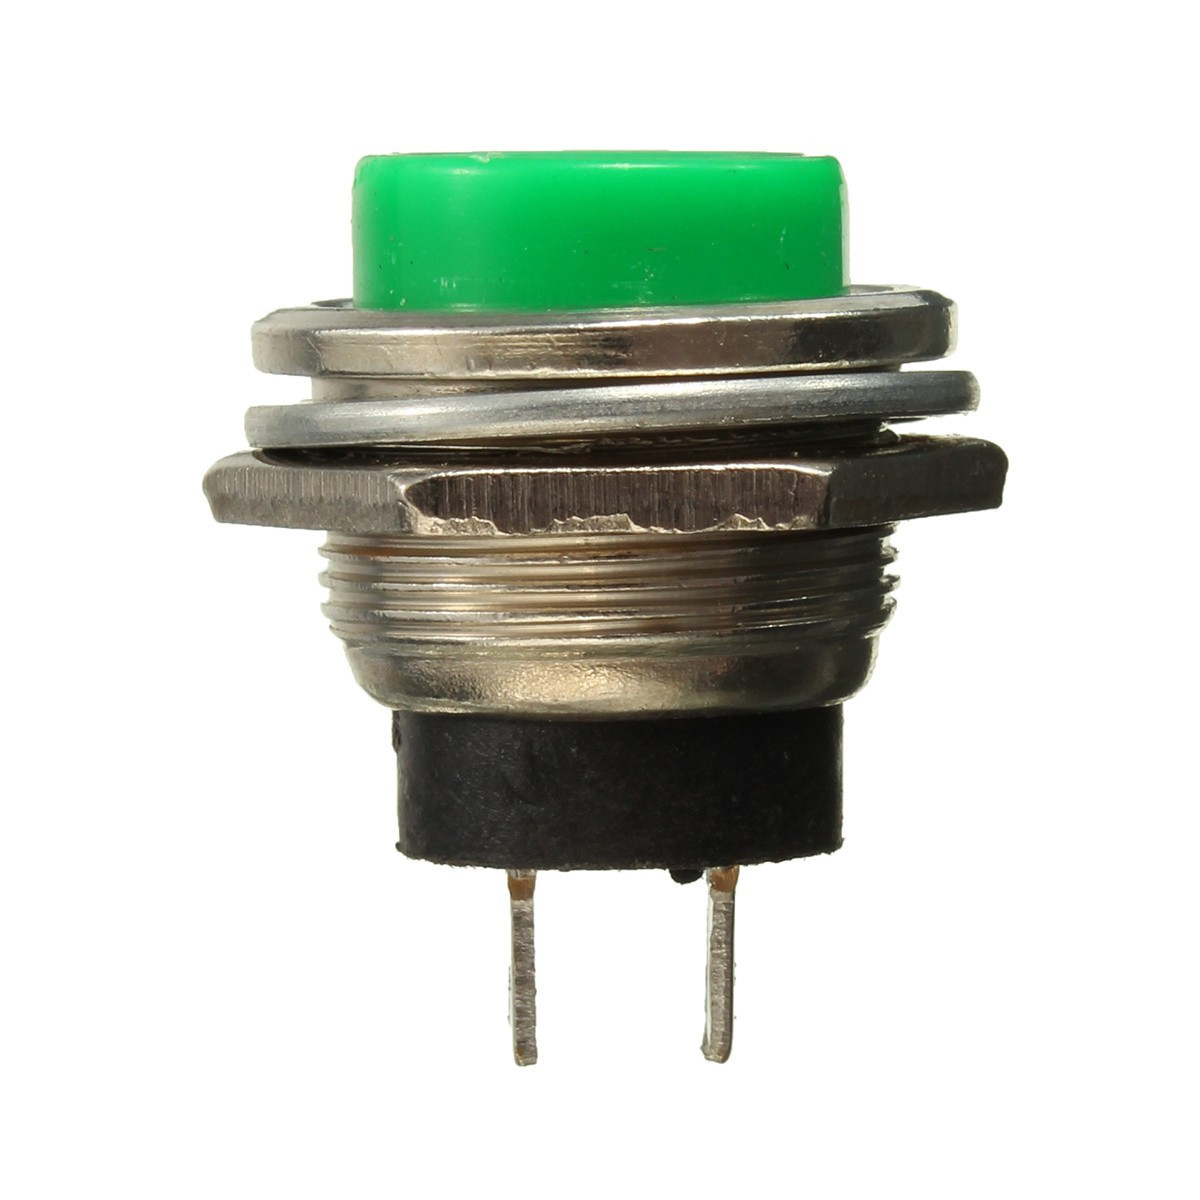 Philippines Car Ignition Momentary Push Button Switch 3a 125v Off Switches Spst On Horn Engine Start Green